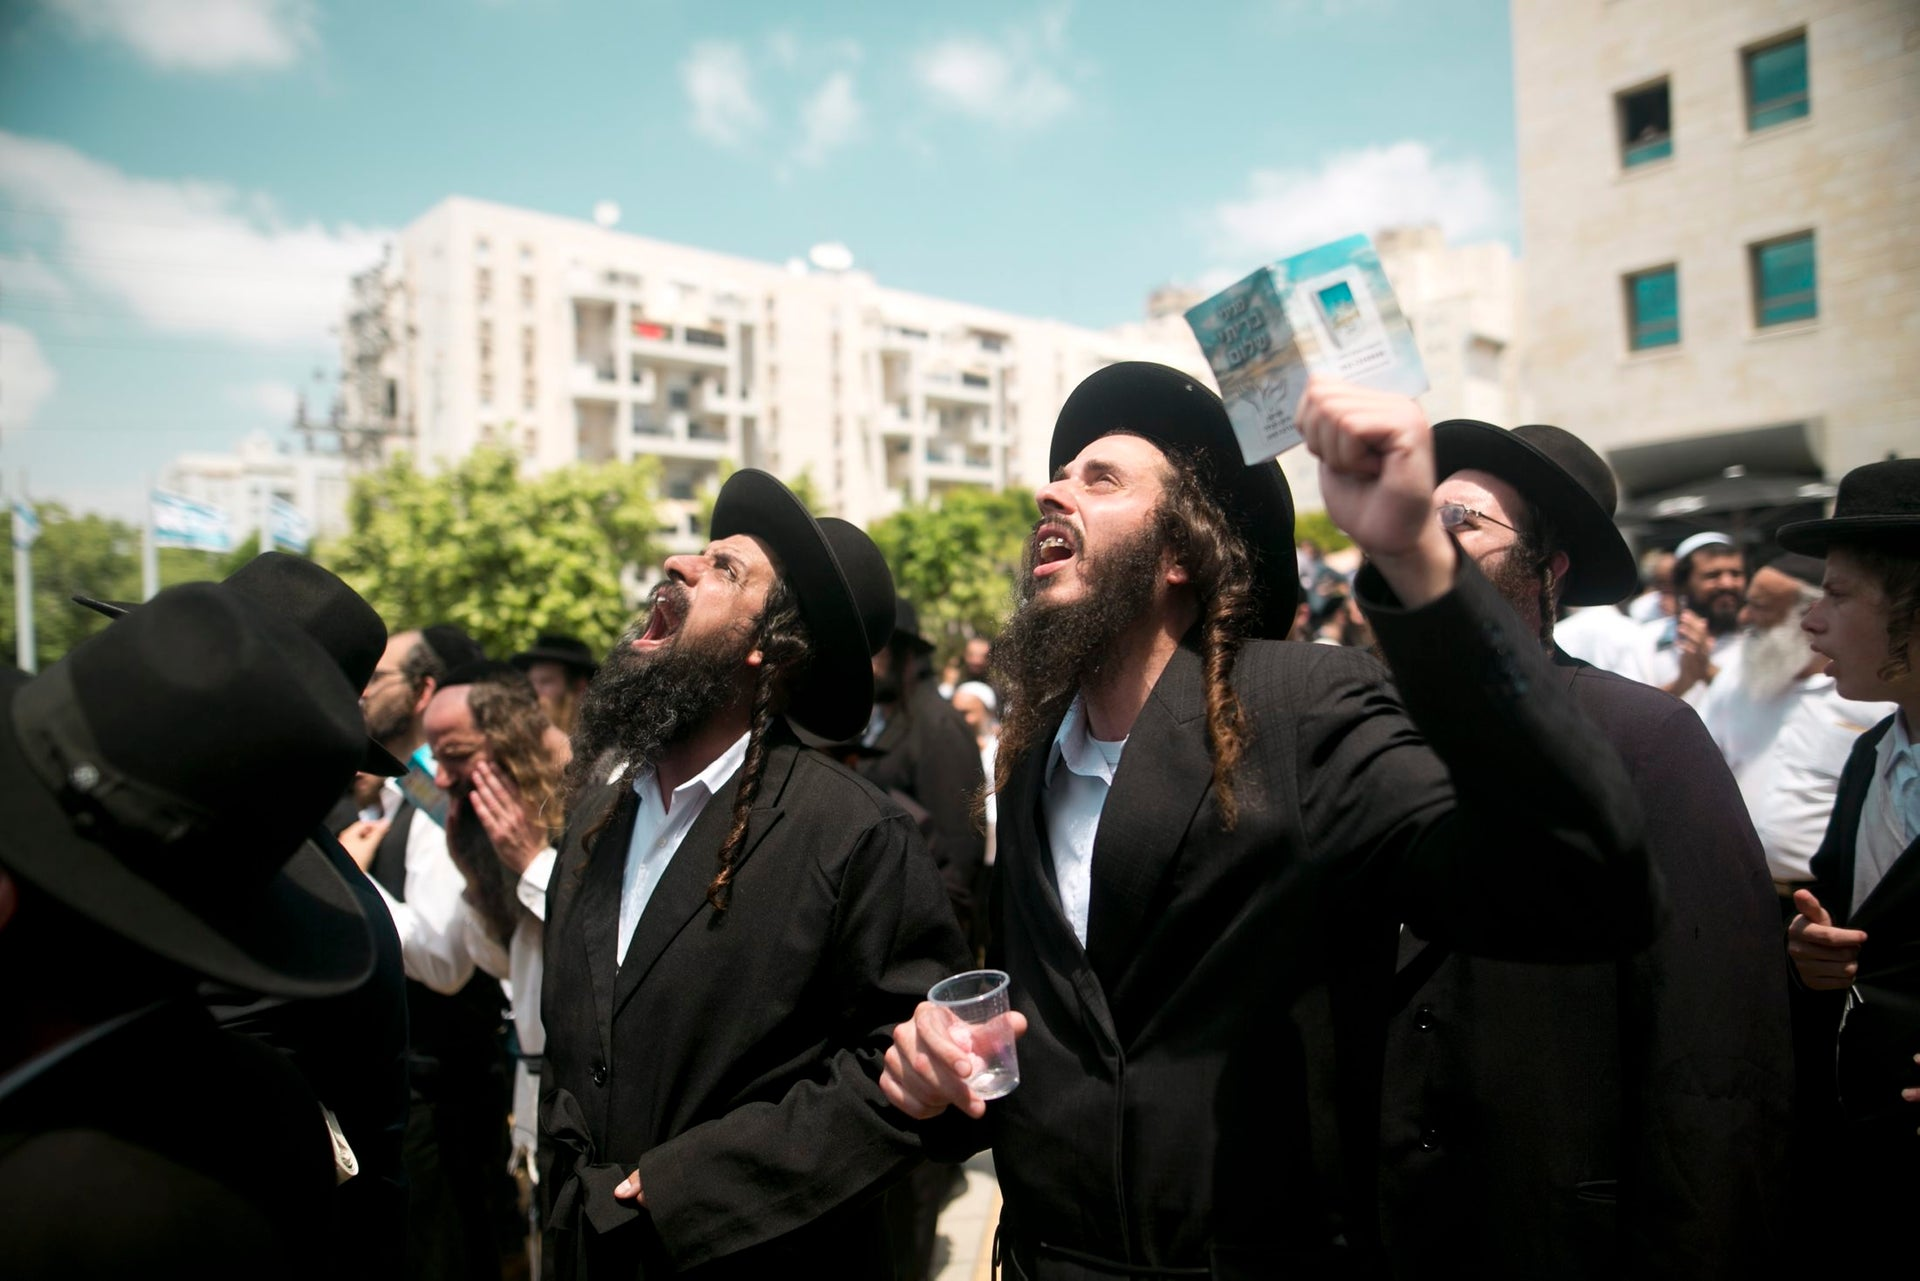 Followers of Rabbi Eliezer Berland stage a protest in front of the Rishon Lezion tribunal, 2016